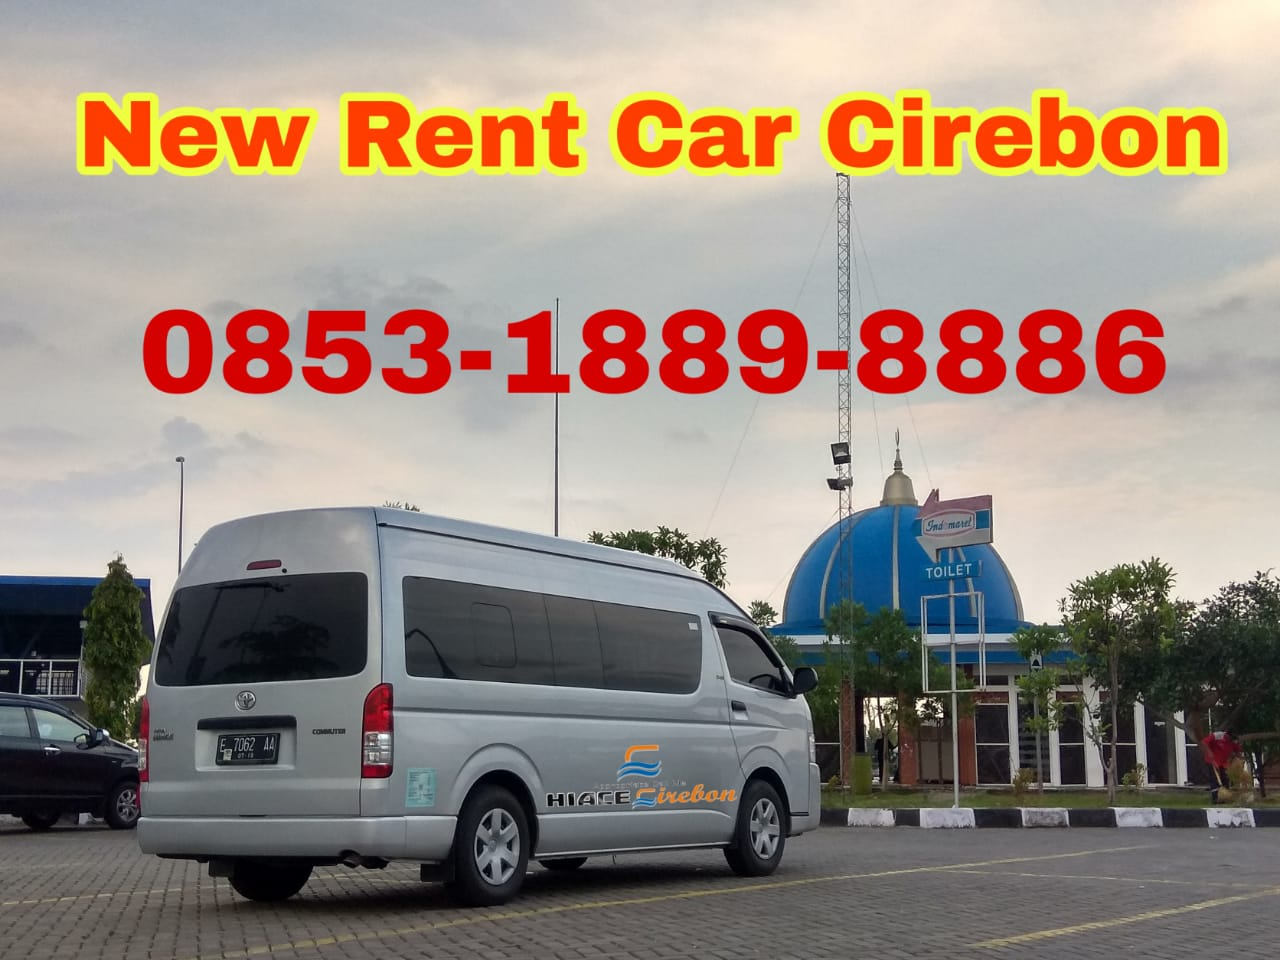 New Rent Car Cirebon